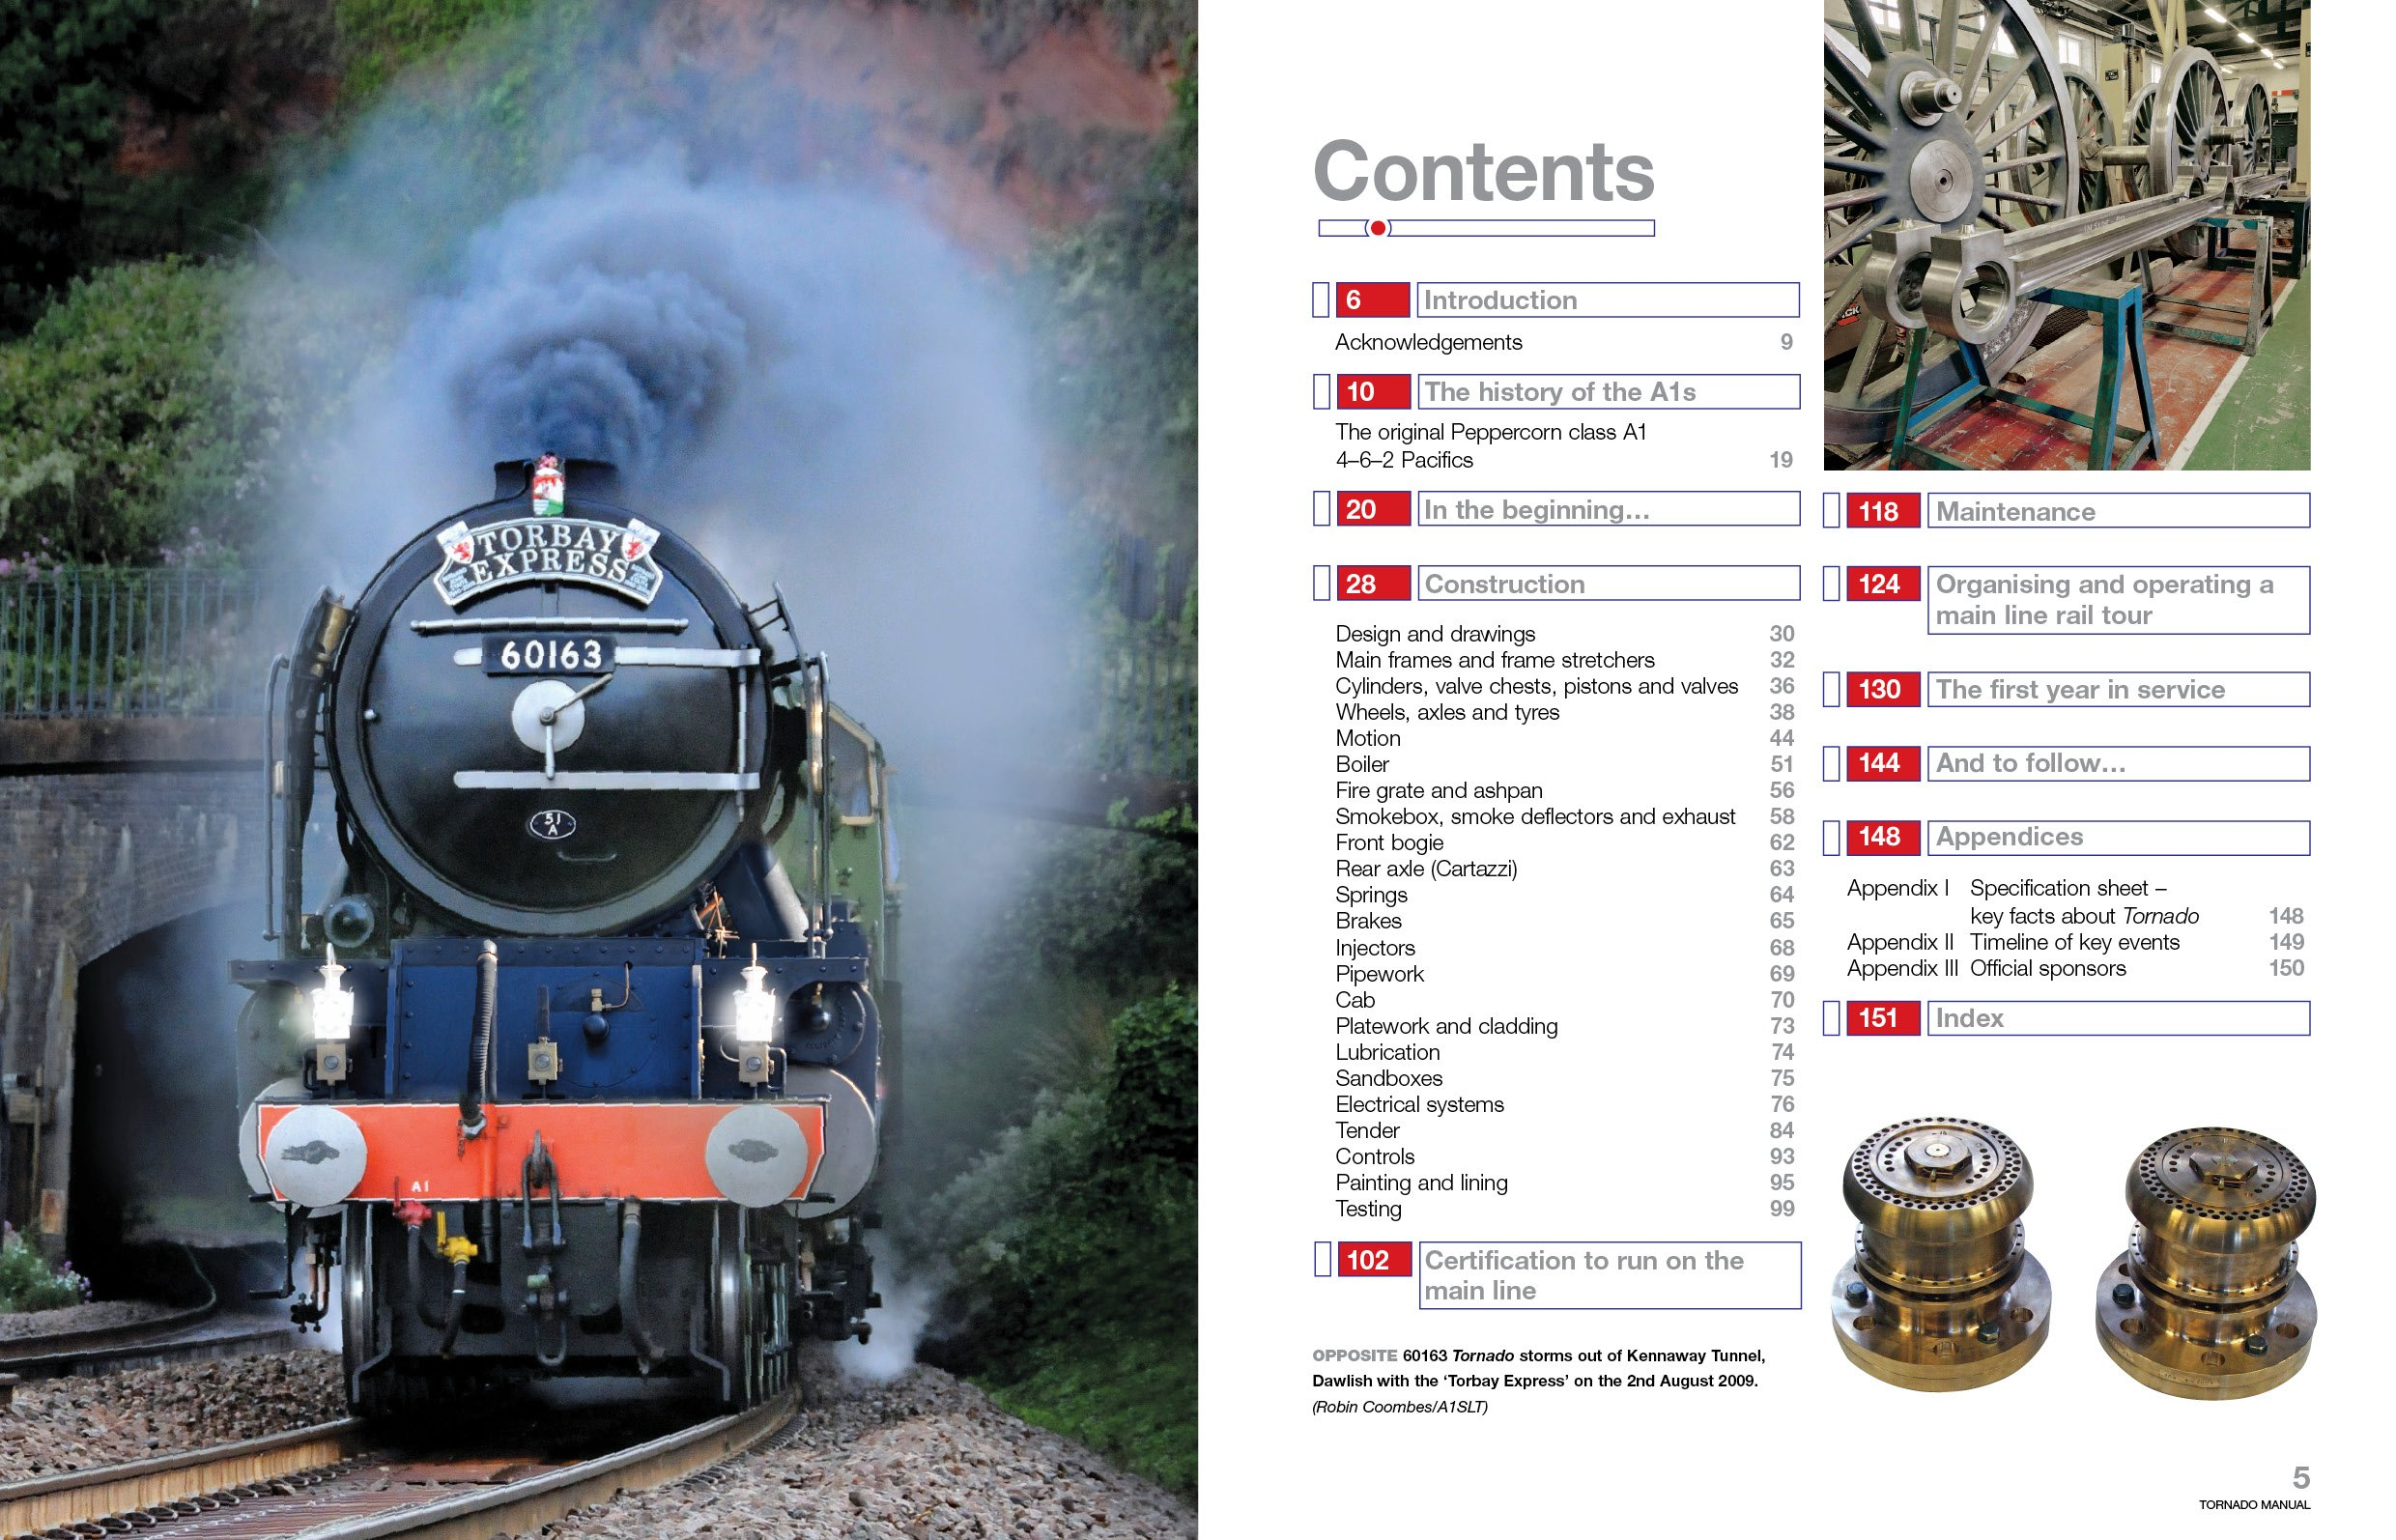 Tornado Manual: New Peppercorn Class A1 Locomotive (Owner's Workshop Manual)  (Haynes Owners Workshop Manuals (Hardcover)): Amazon.co.uk: Geoff Smith: ...